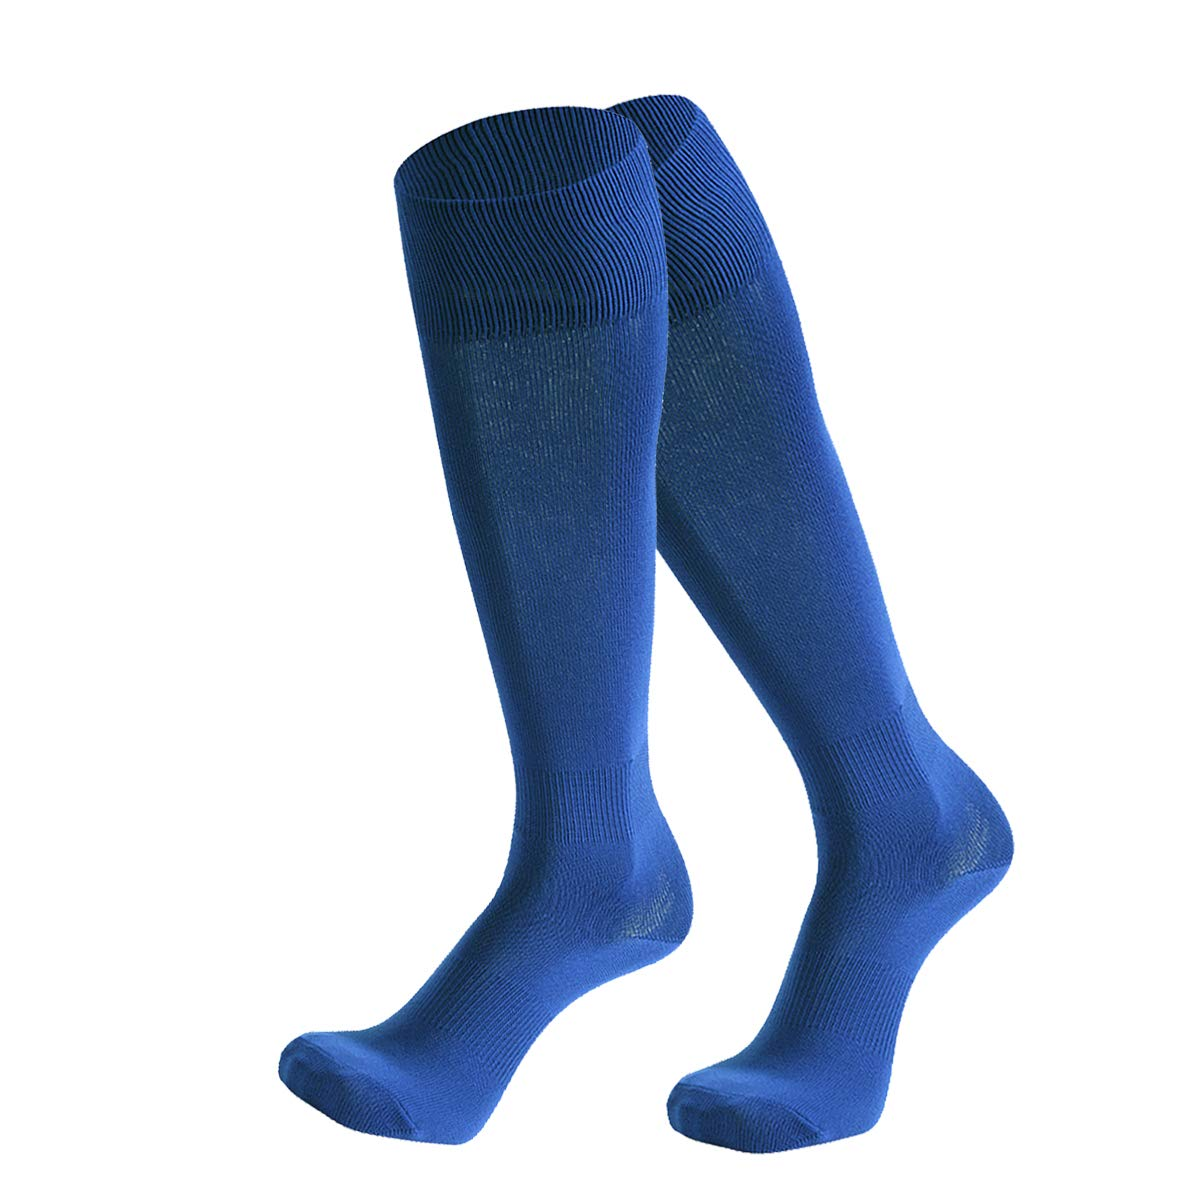 Dsource Unisex Soccer Socks Knee High Solid Baseball Football Sports Team Socks 2 Pairs Blue by Dsource